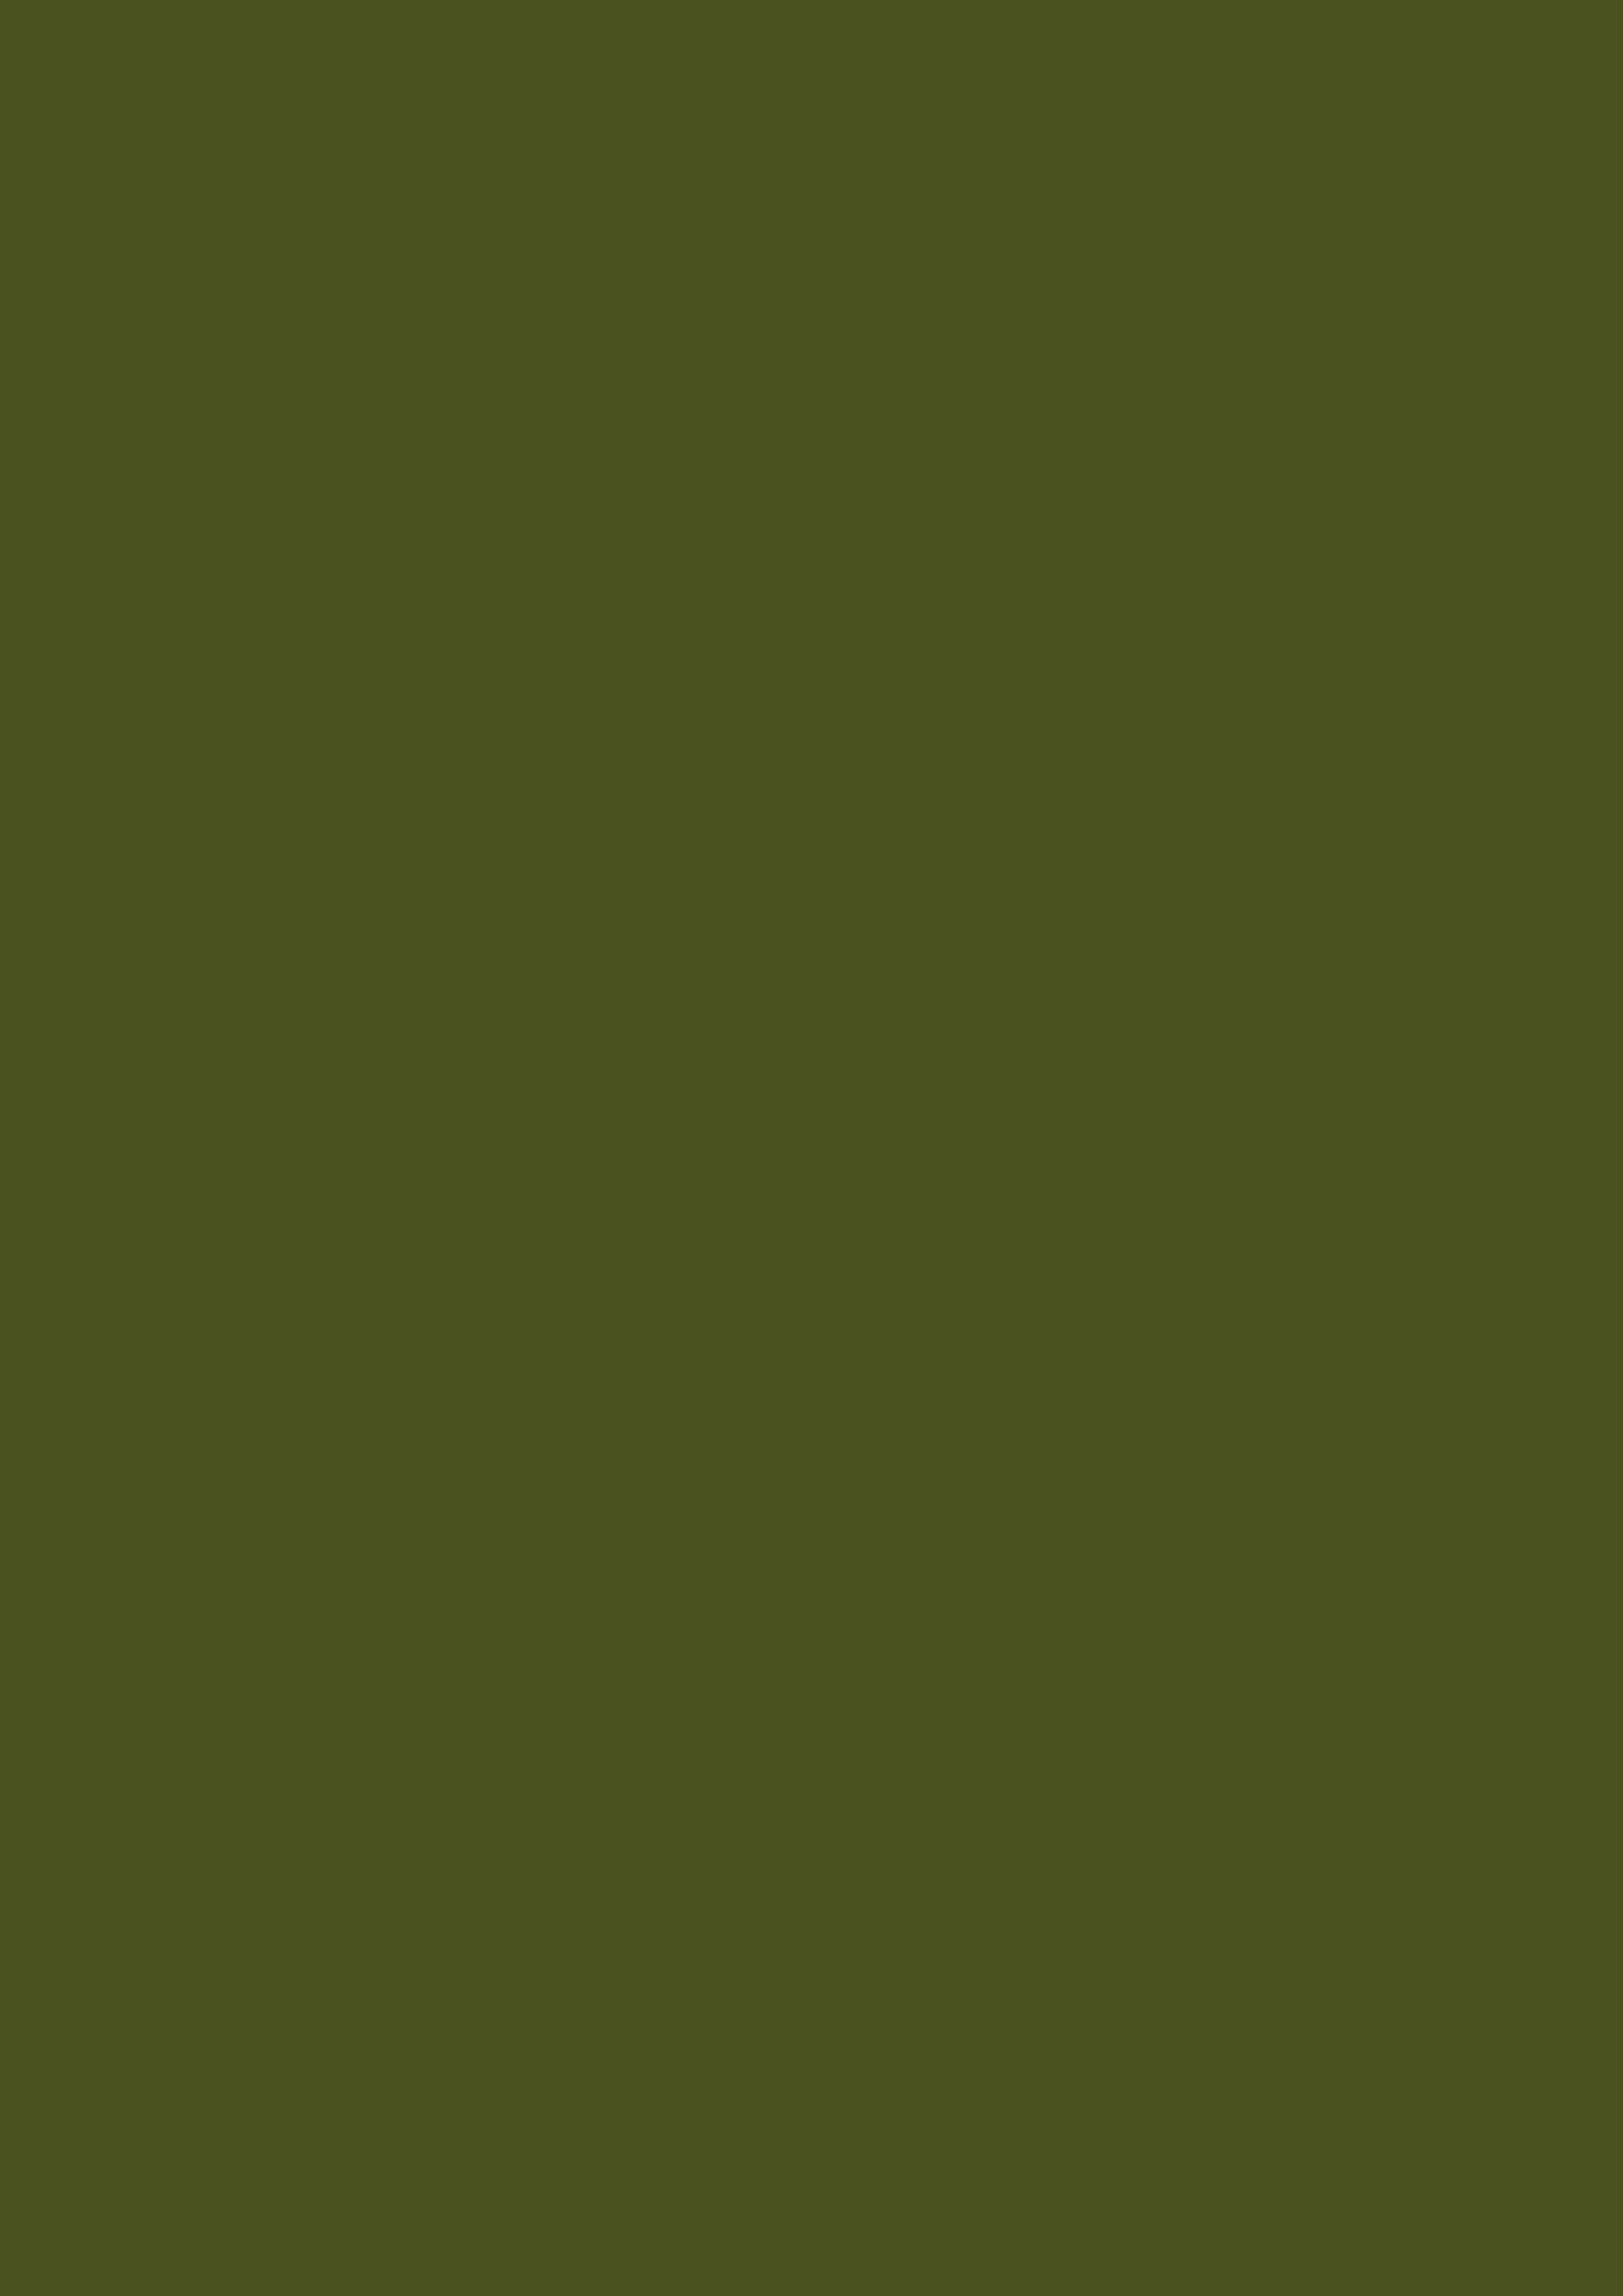 2480x3508 Army Green Solid Color Background